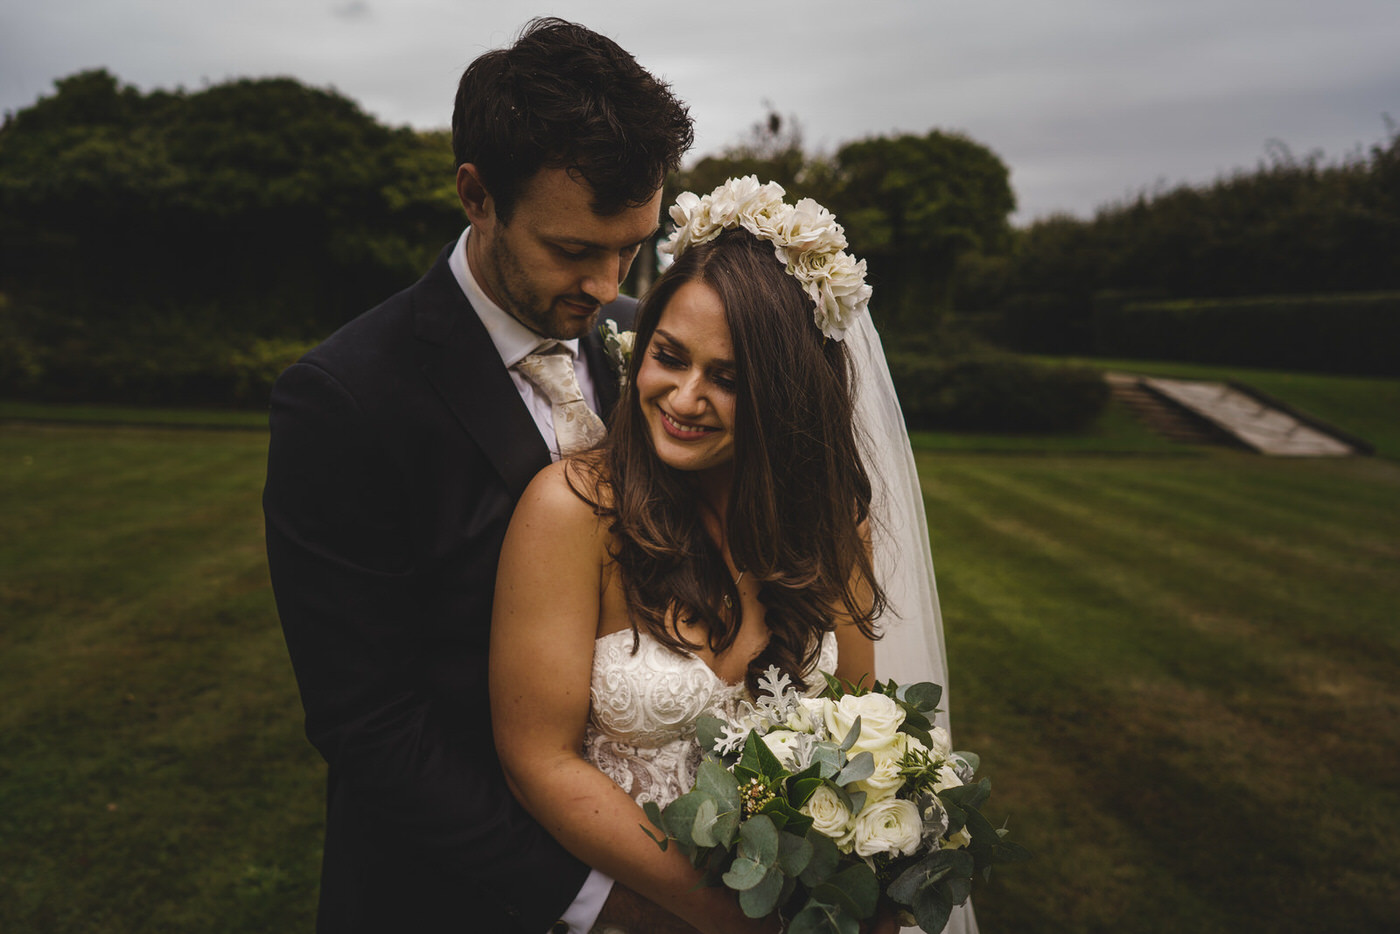 the bride and her groom have a hug while the bride holds onto her wedding flowers